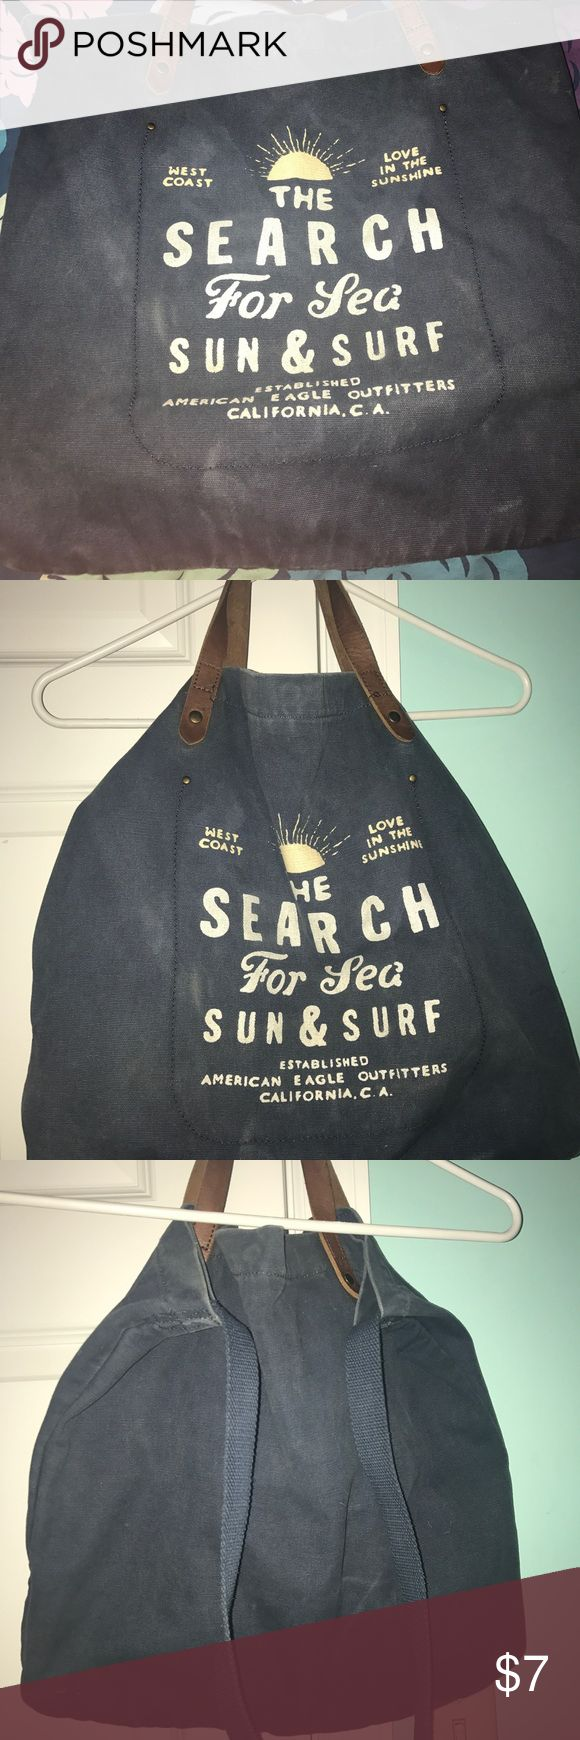 American Eagle tote bag Navy AE tote bag.  - can be worn as cross body or carried as a tote - 2 pockets inside for phone/wallet etc. American Eagle Outfitters Bags Totes